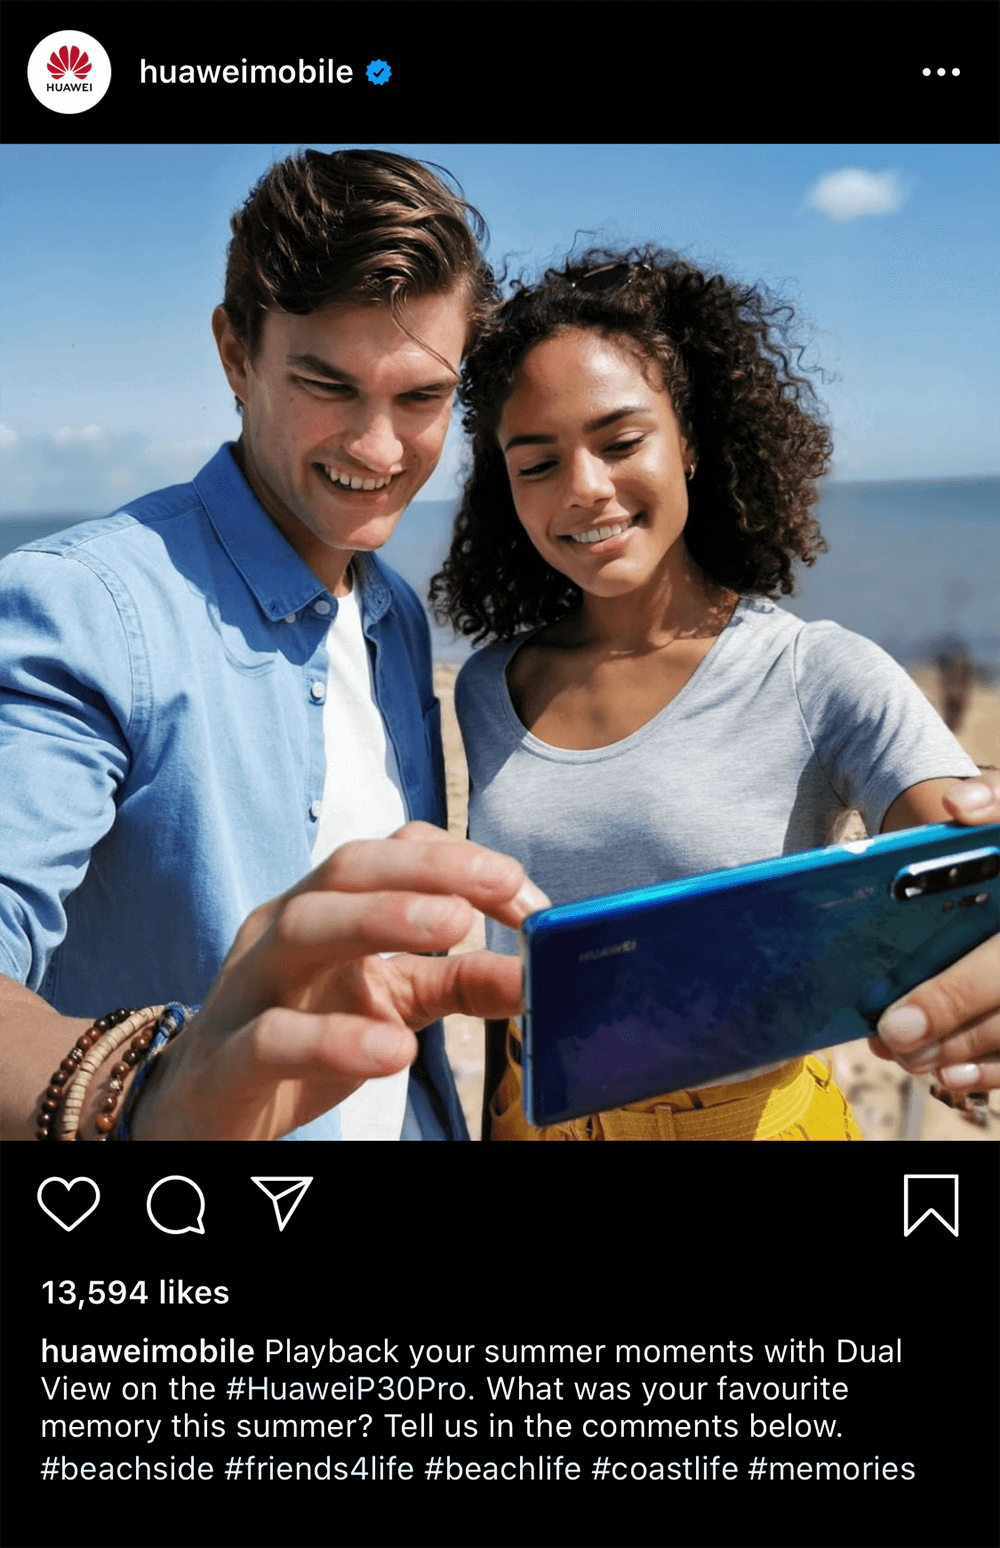 Huawei Instagram post with a photo of two people watching something on a phone